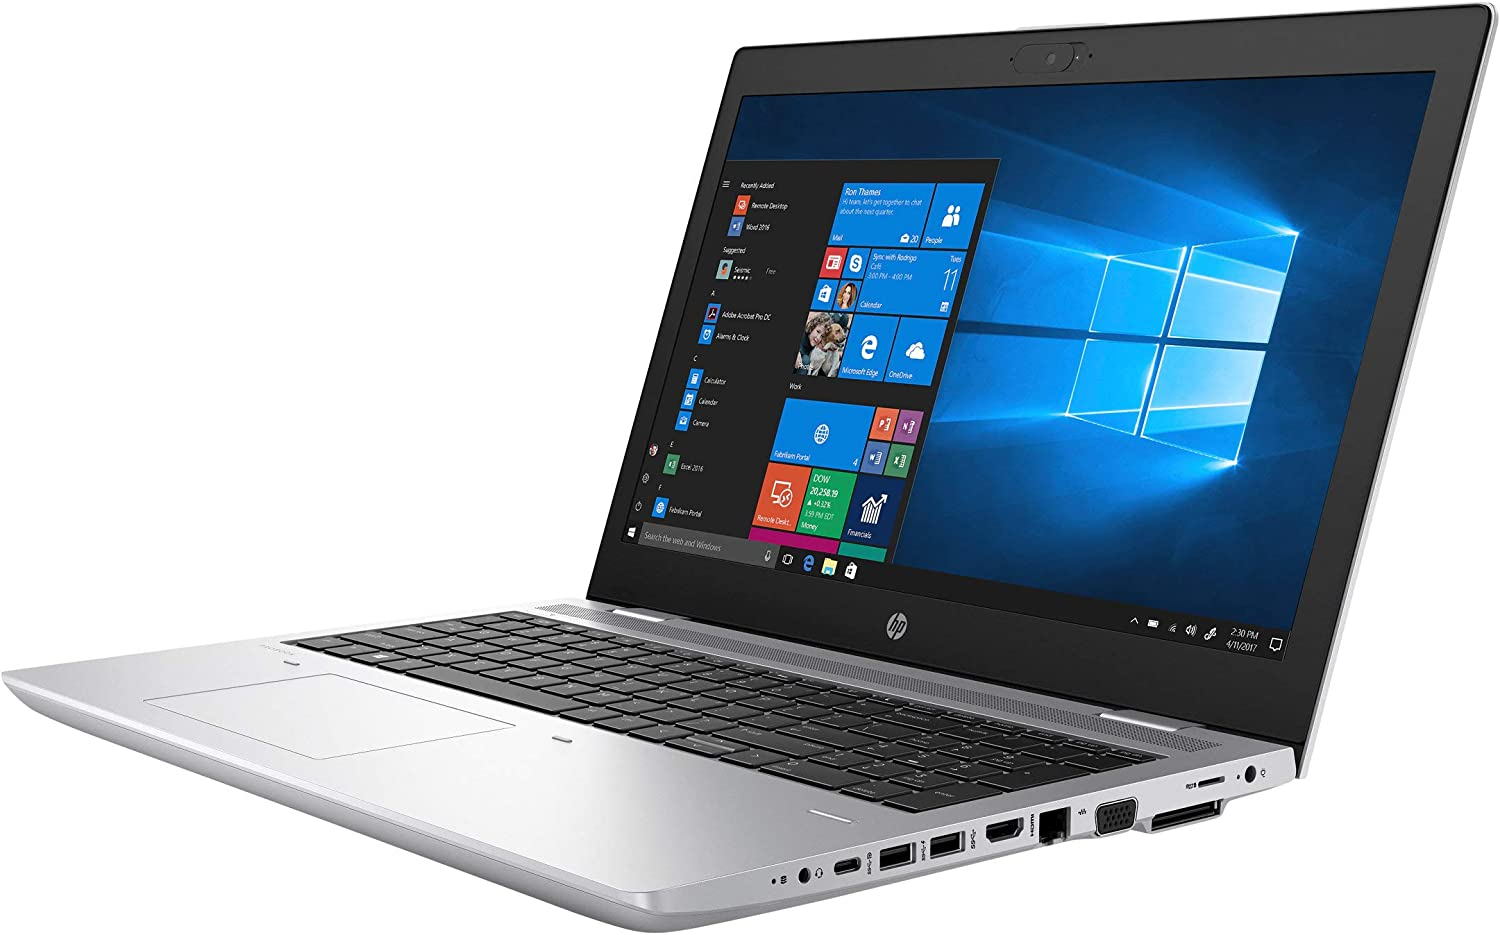 "HP 3XJ66UT#ABA Probook 640 G4 14"" Notebook - Windows - Intel Core i5 1.7 GHz - 8 GB RAM - 256 GB SSD - Natural Silver"